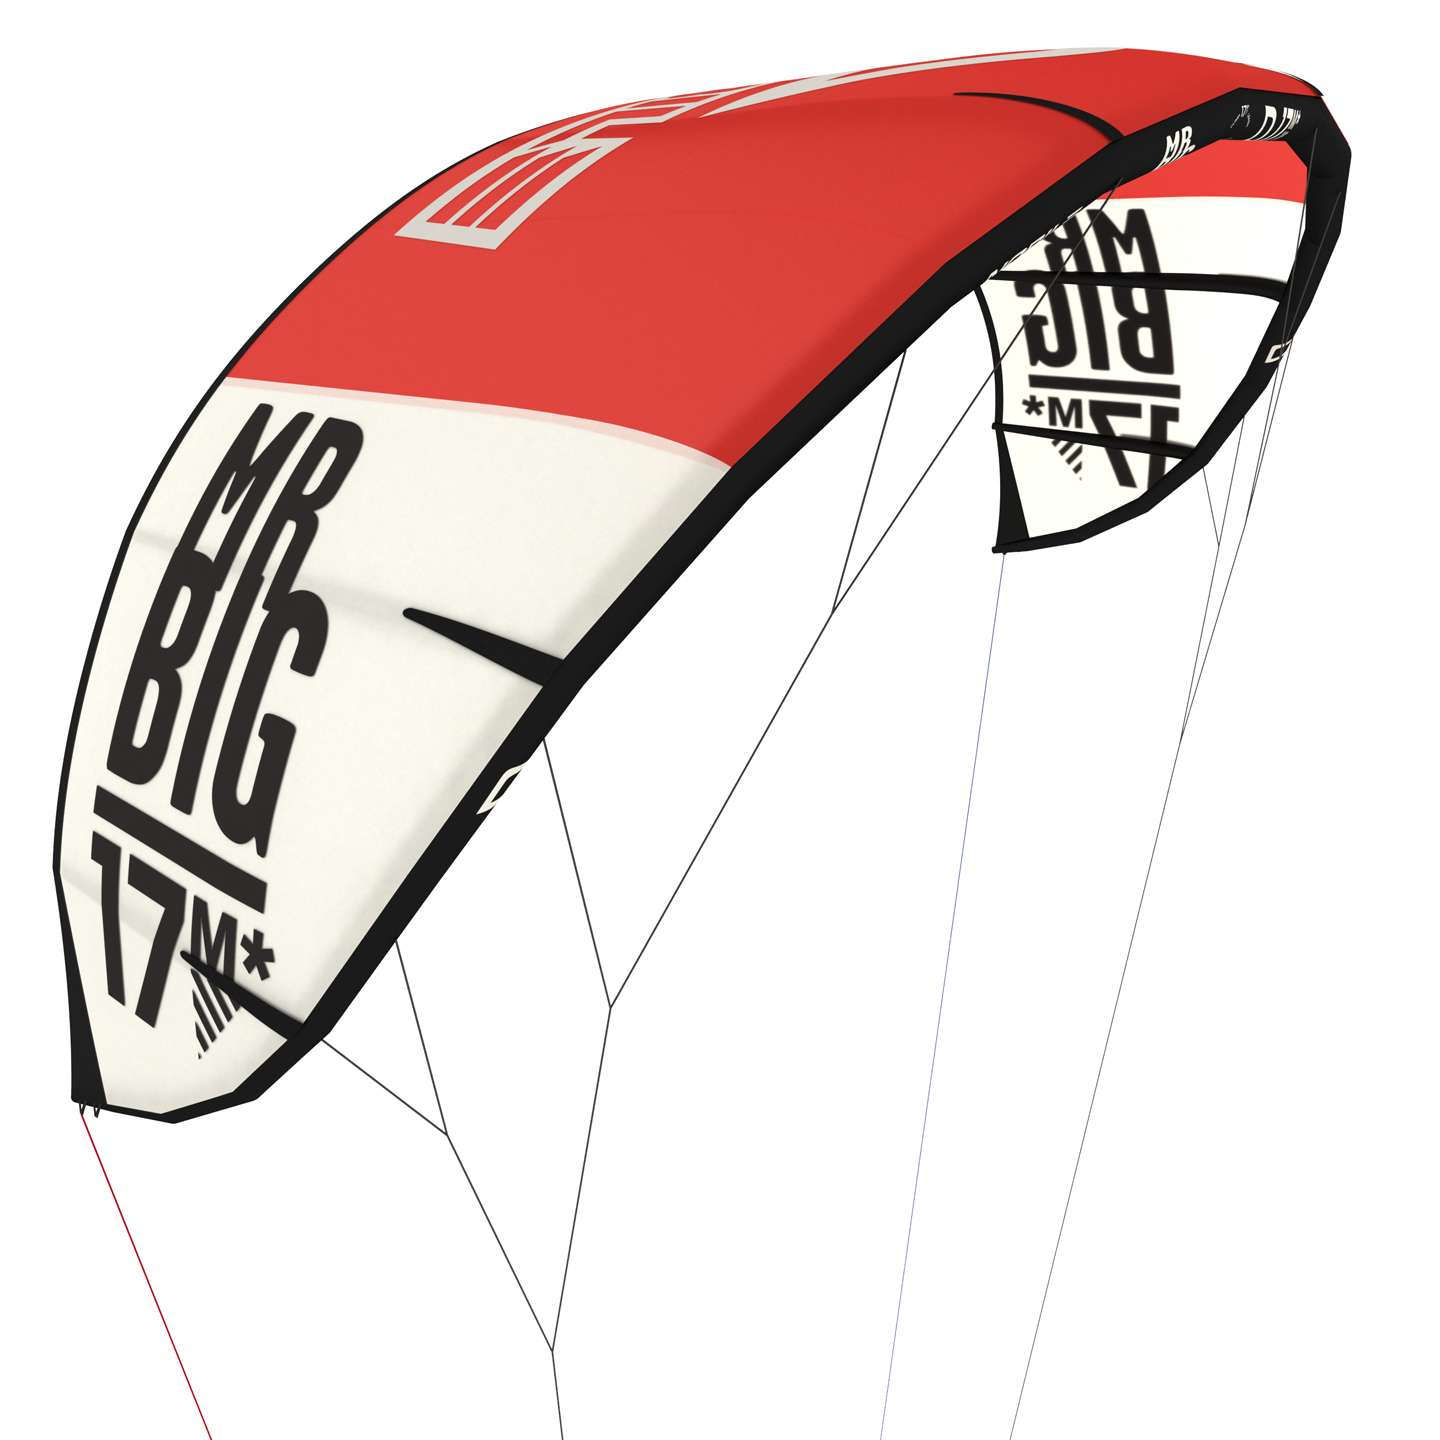 kite 2017 NOBILE MR BIG - 17m2